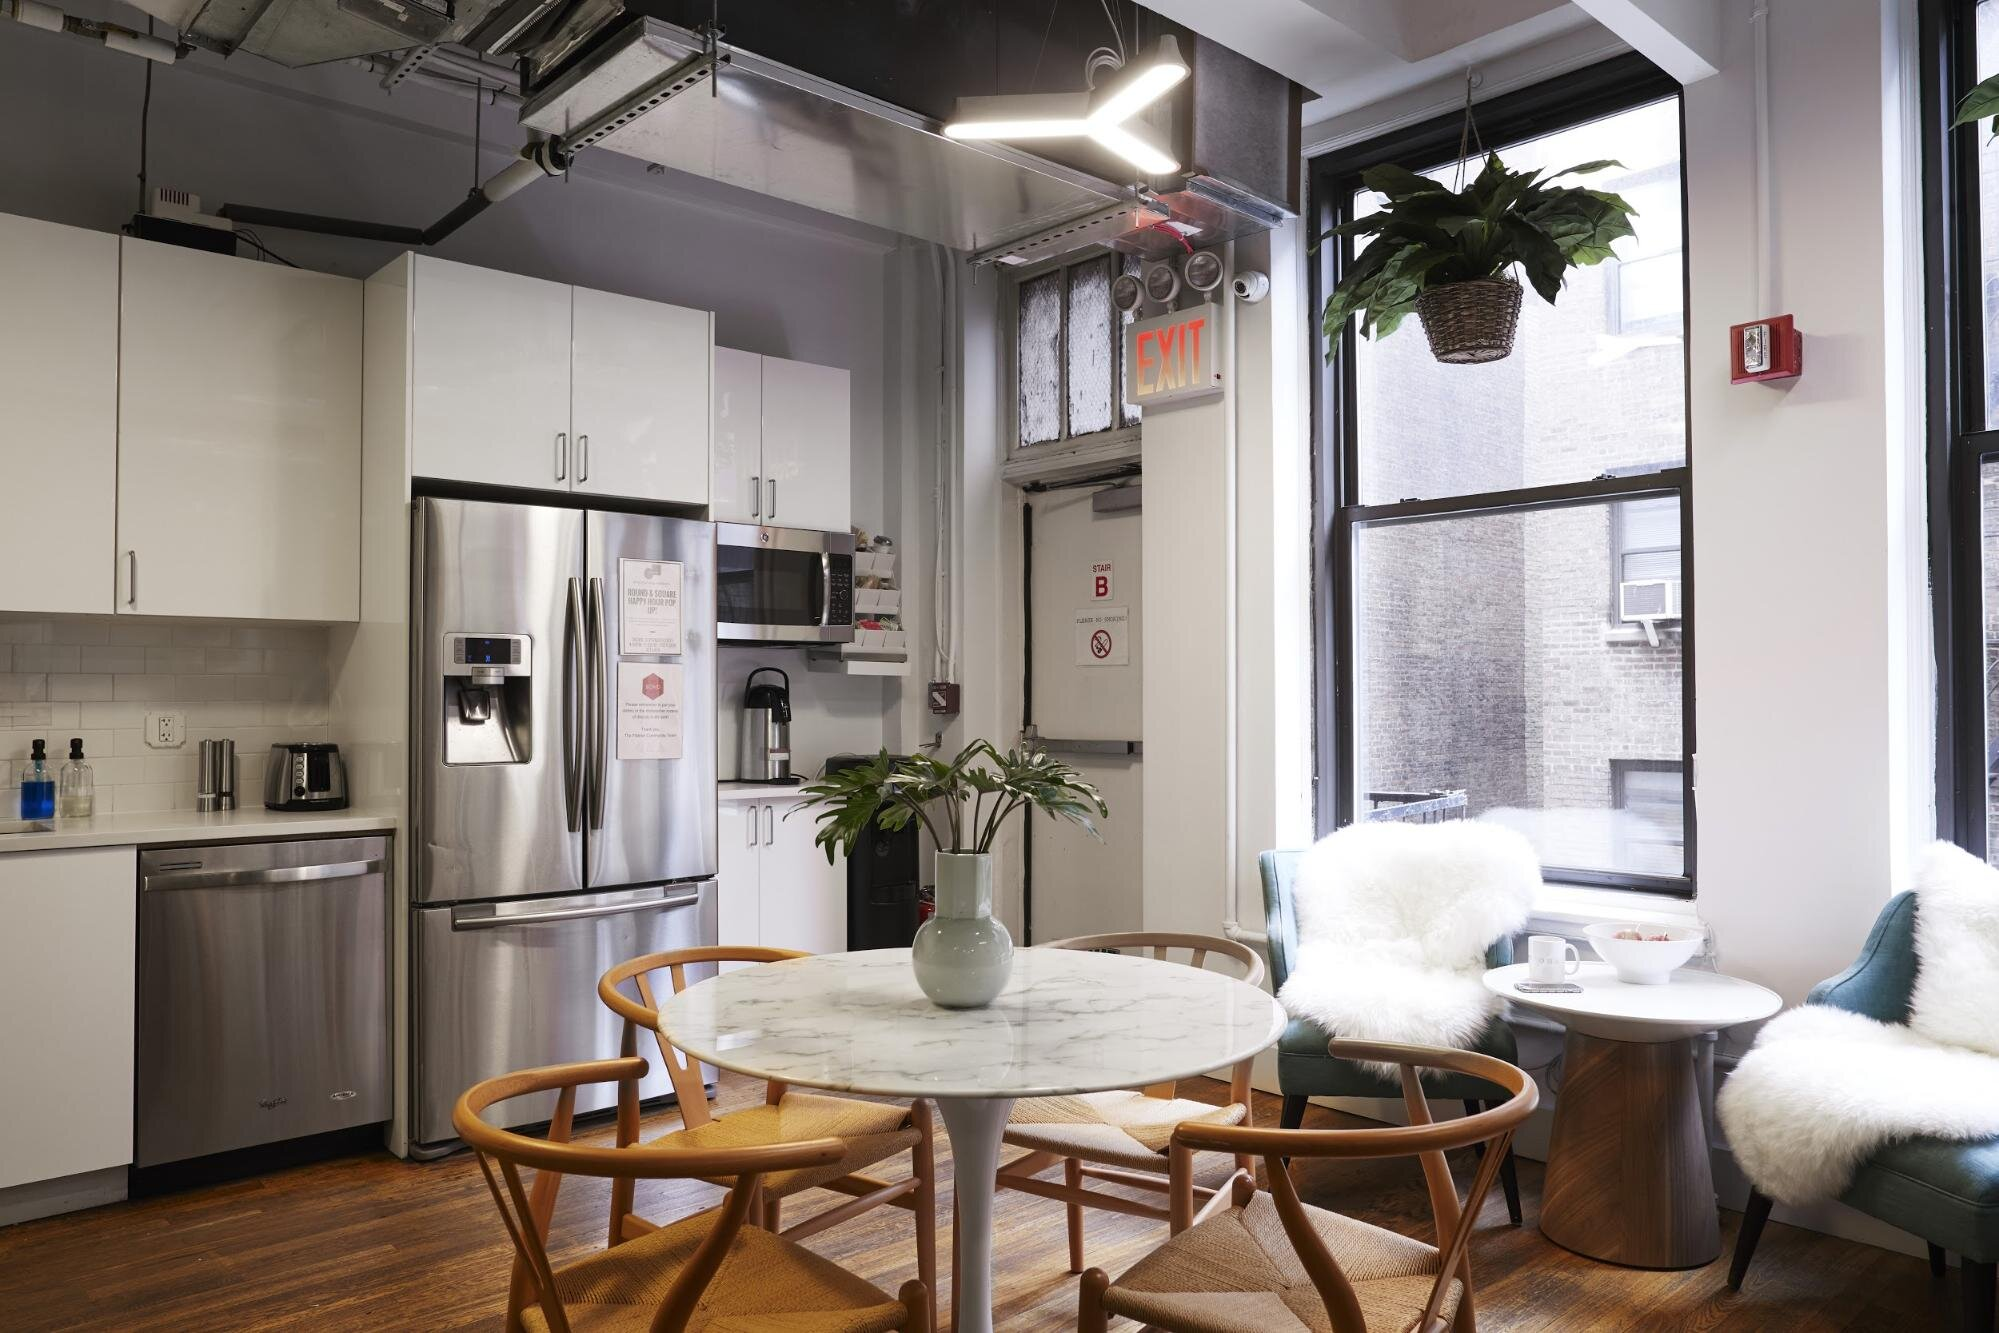 Office kitchen with white cabinets, large window, round table, and chairs